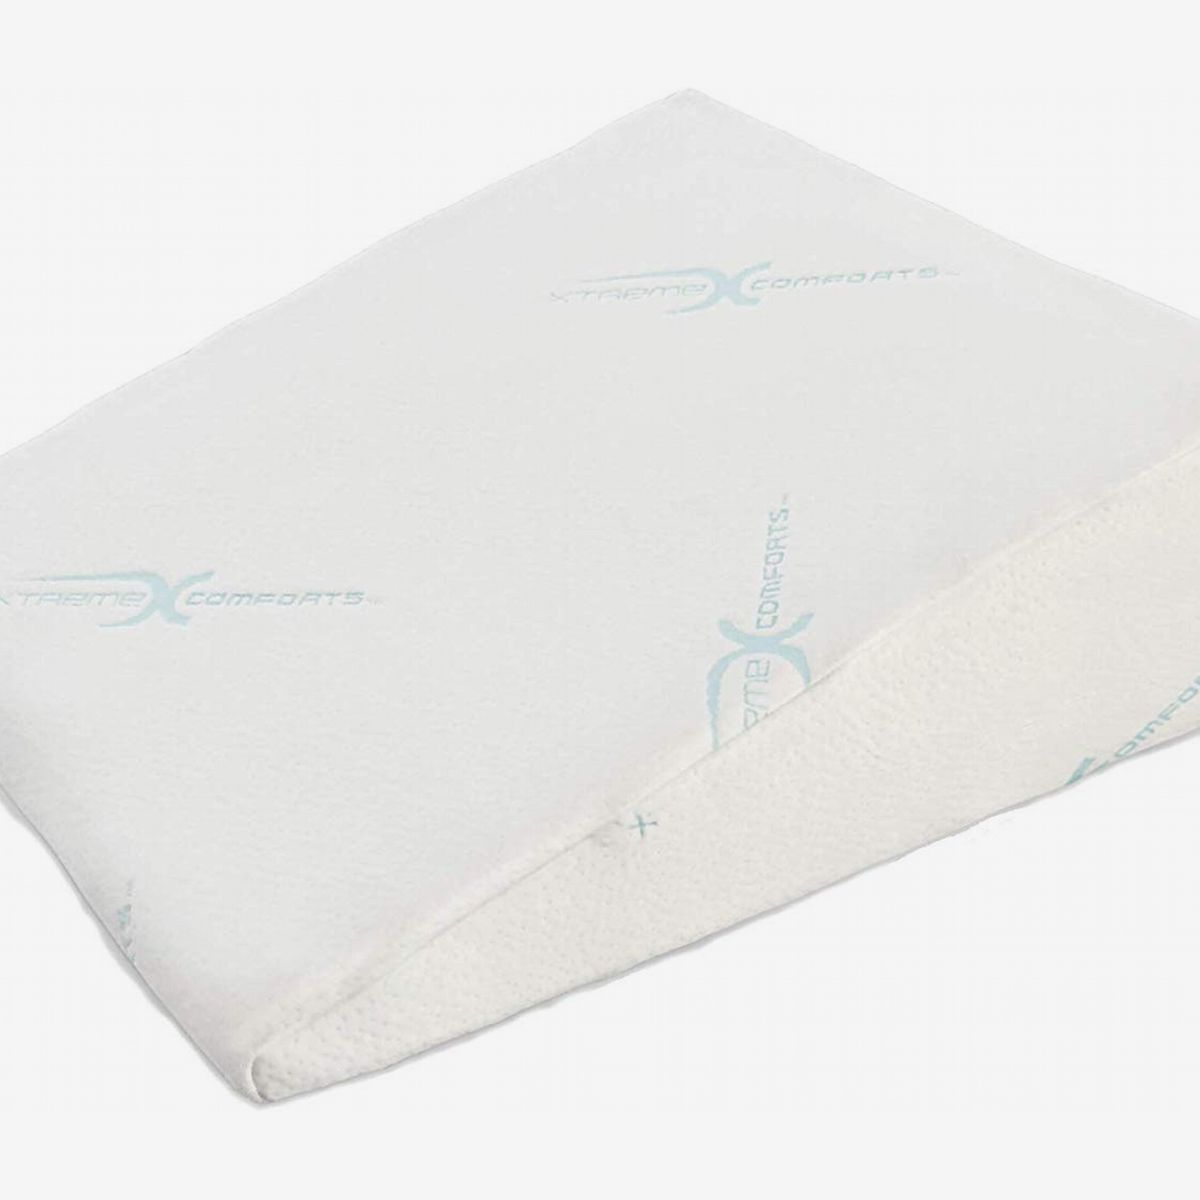 Image of: 5 Best Wedge Pillows 2020 The Strategist New York Magazine